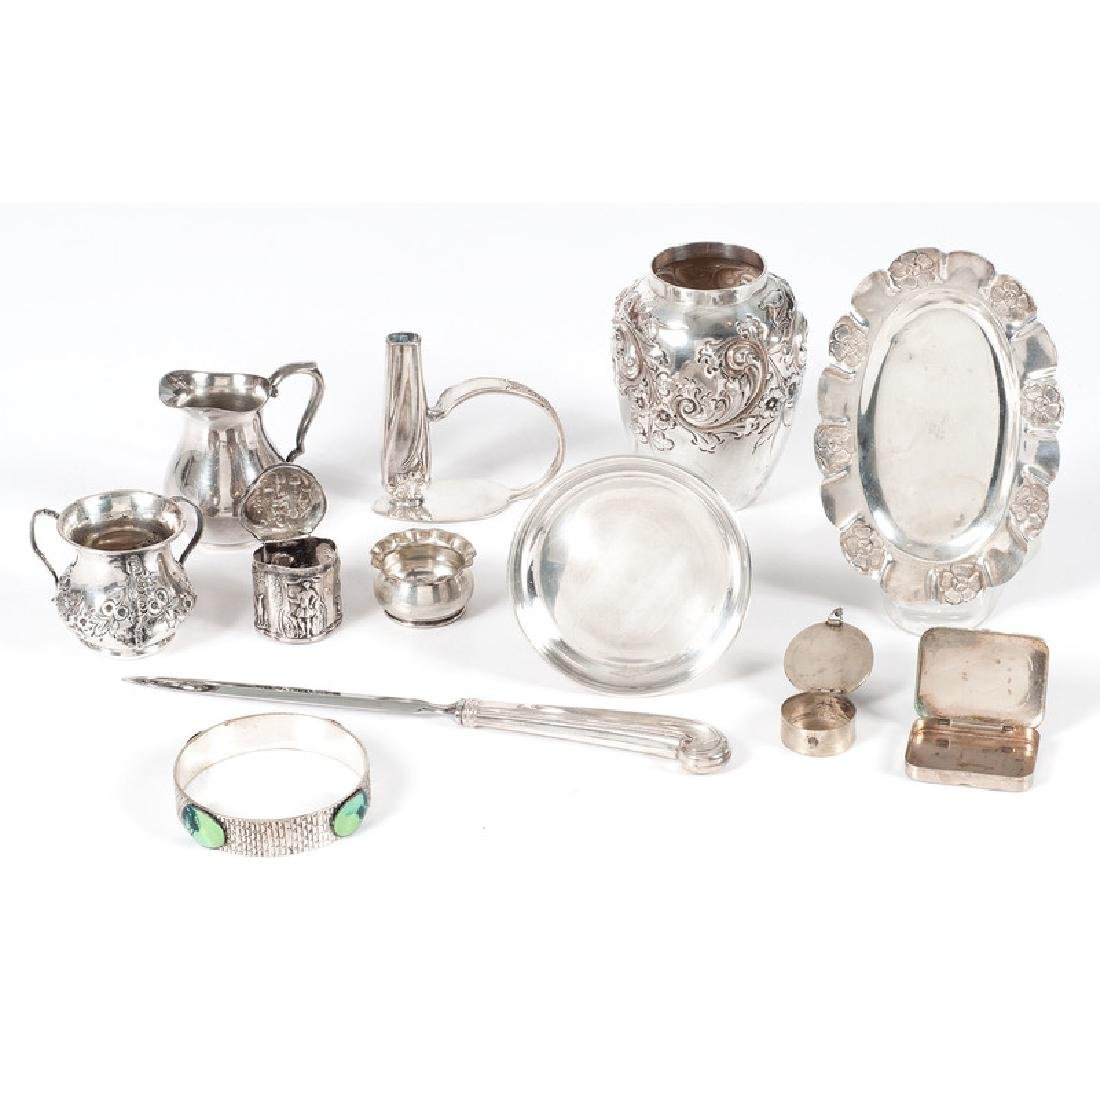 Sterling and Silverplate Tablewares and Accessories - 2